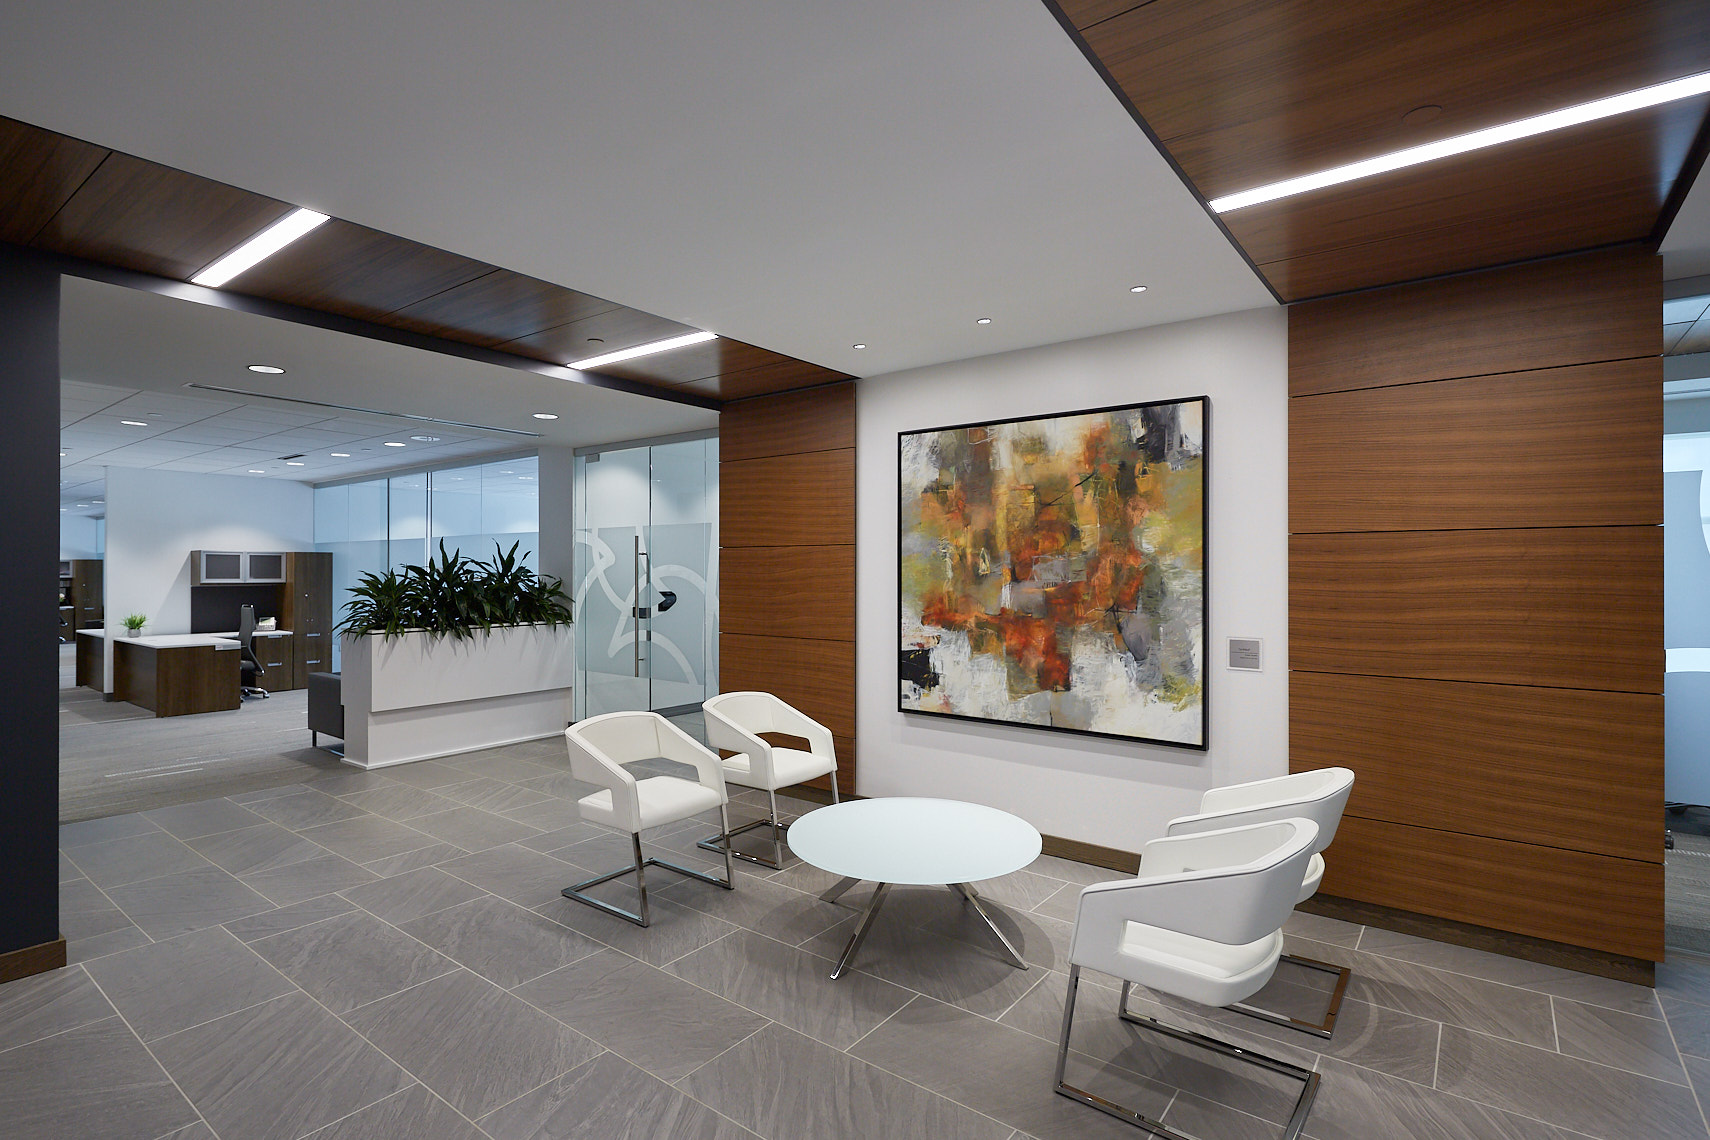 Syneos Health, Raleigh NC - HagerSmith Design, Raleigh NC